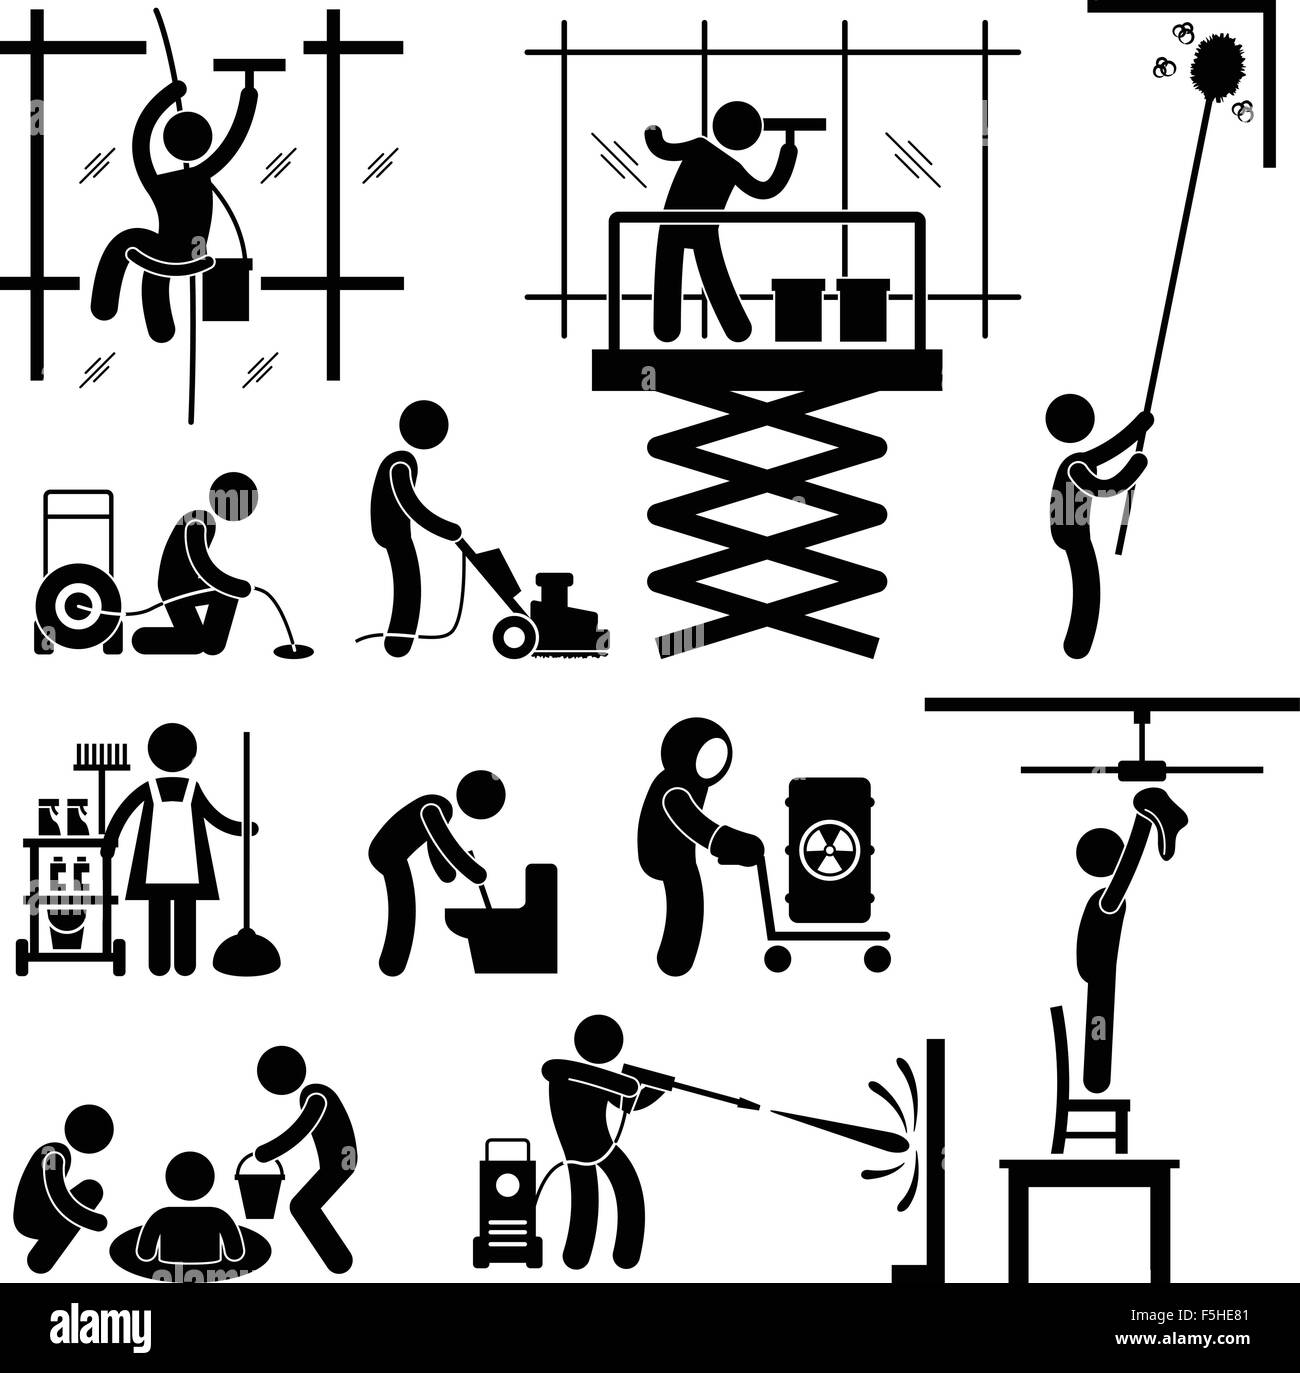 Industrial Cleaning Services Risky Cleaner Job Working Stick Figure Pictogram Icon - Stock Vector